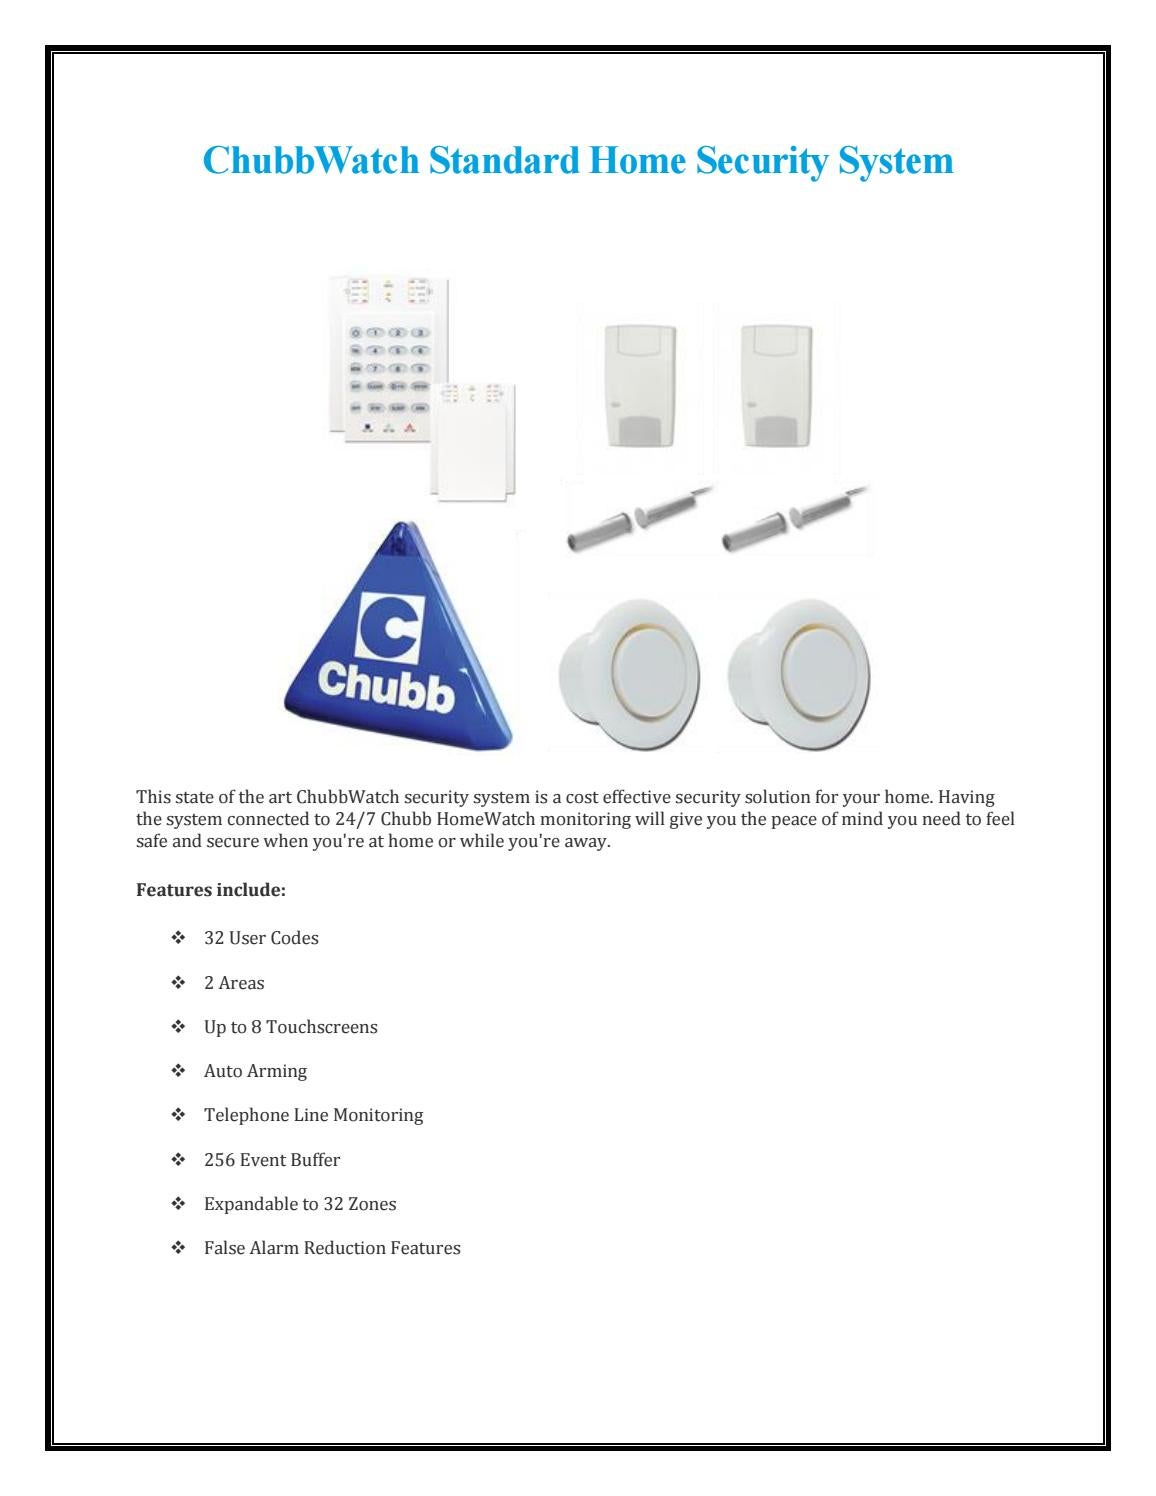 Chubbwatch Standard Home Security System By Chubb Security Issuu